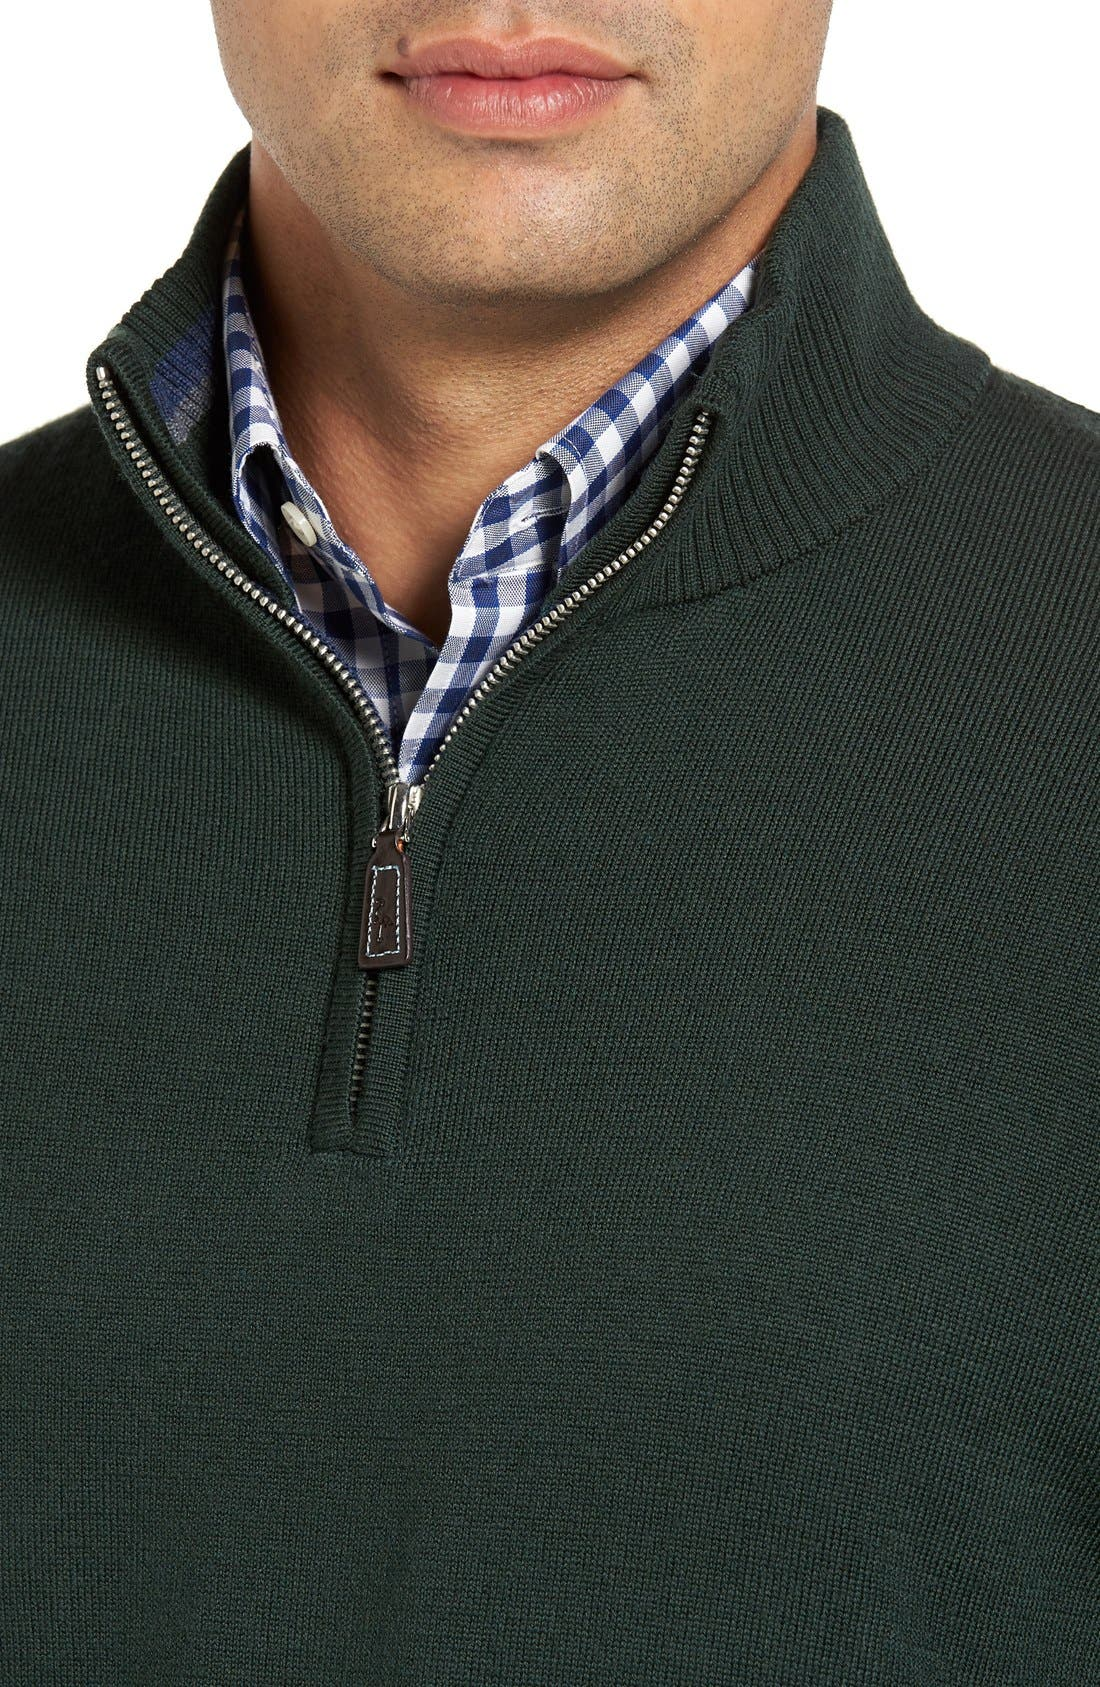 S.Cascade Quarter Zip Wool Sweater,                             Alternate thumbnail 4, color,                             310